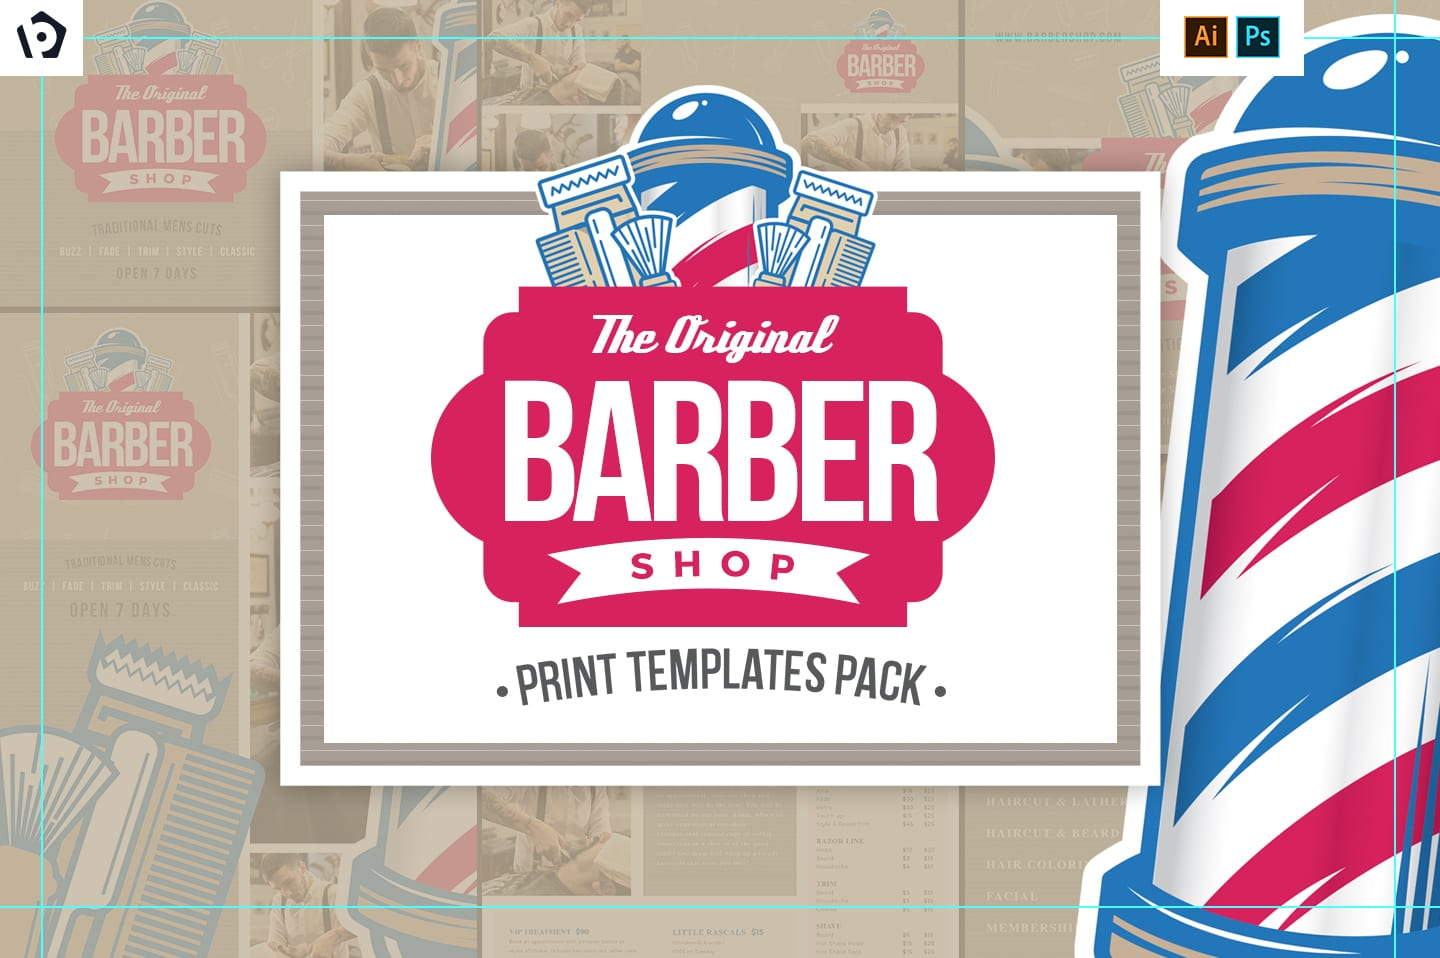 Barber's Shop Templates Pack